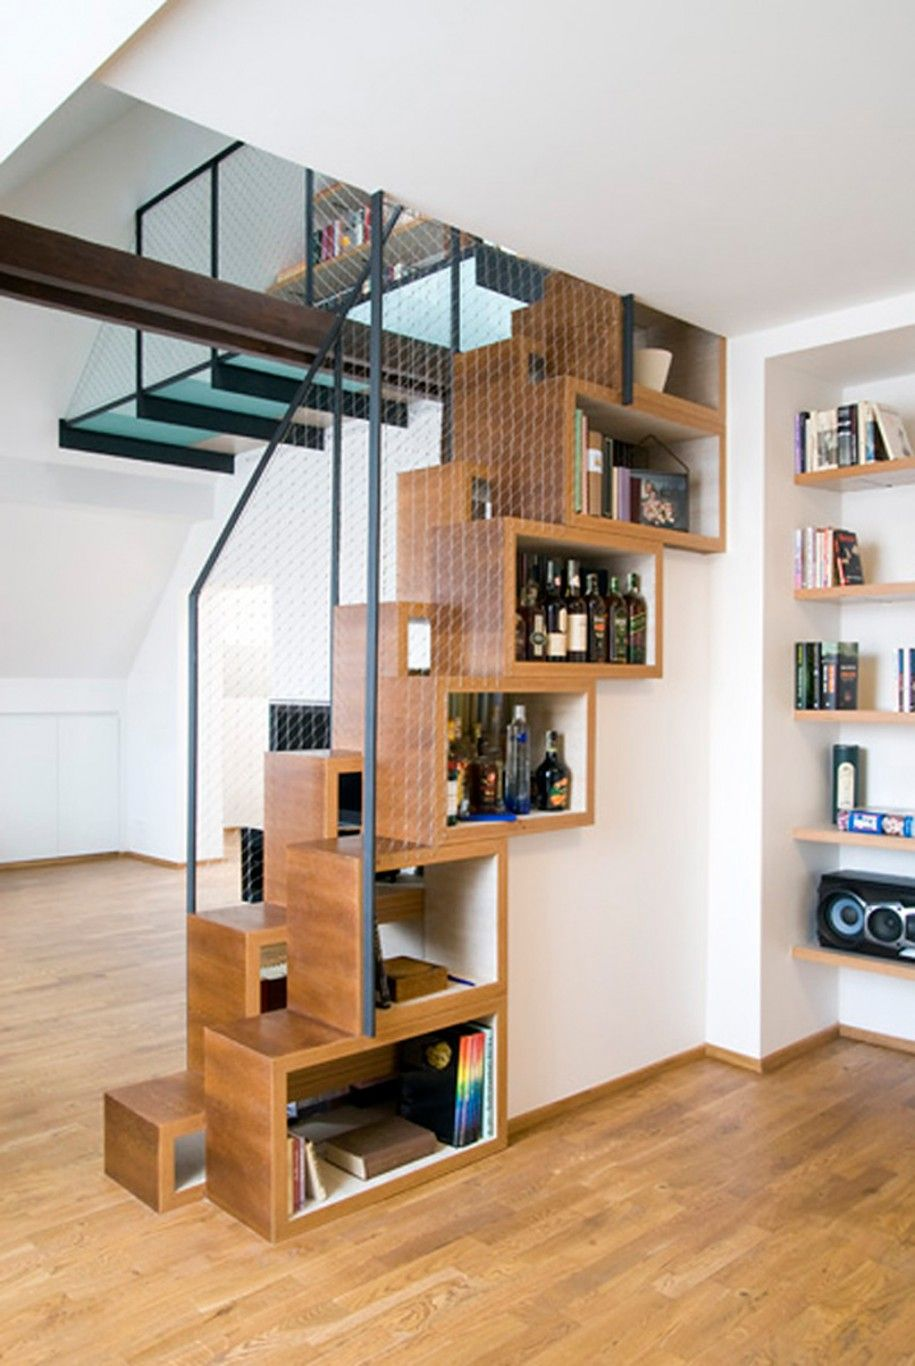 Marvelous Small Space Home Interior Design : Storage Ideas For Small Spaces In Your  Home With Nice Under Stairs Storage Of Wooden Materials And Complete With  Wall ...